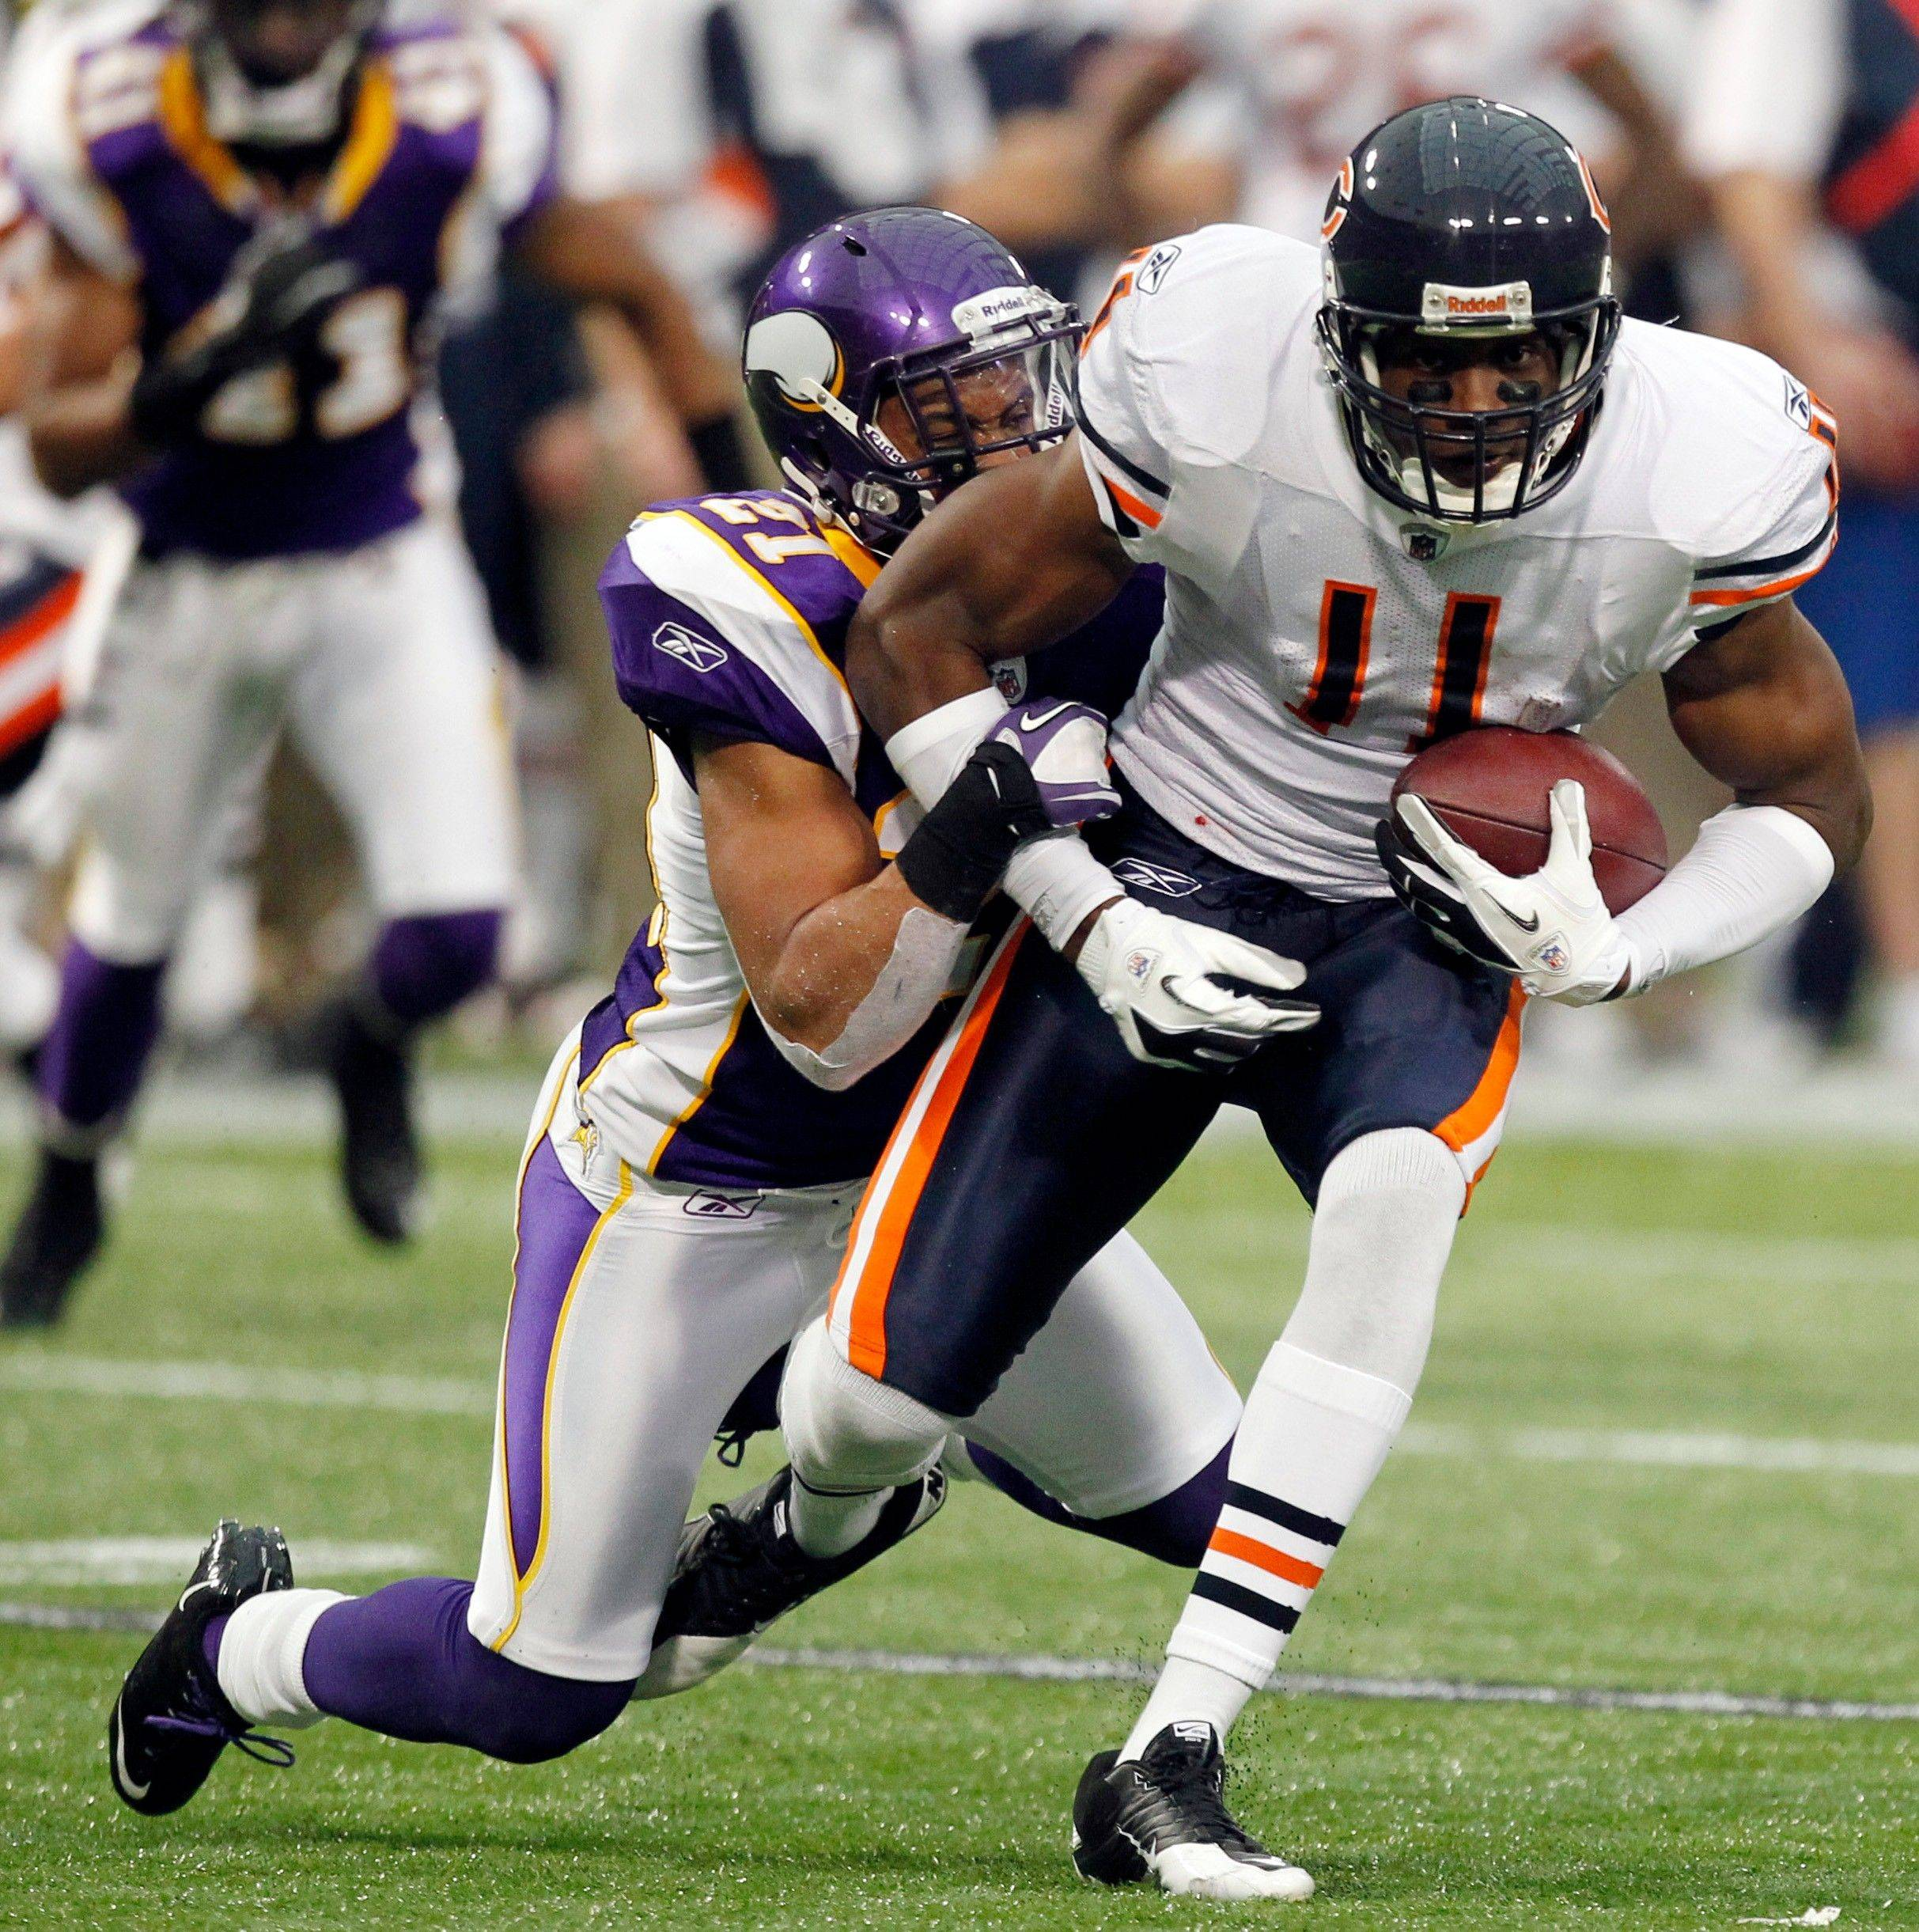 Chicago Bears wide receiver Roy Williams gets tackled by Minnesota Vikings cornerback Asher Allen after making a first down reception in the second half of an NFL football game in Minneapolis, Sunday, Jan. 1, 2012.